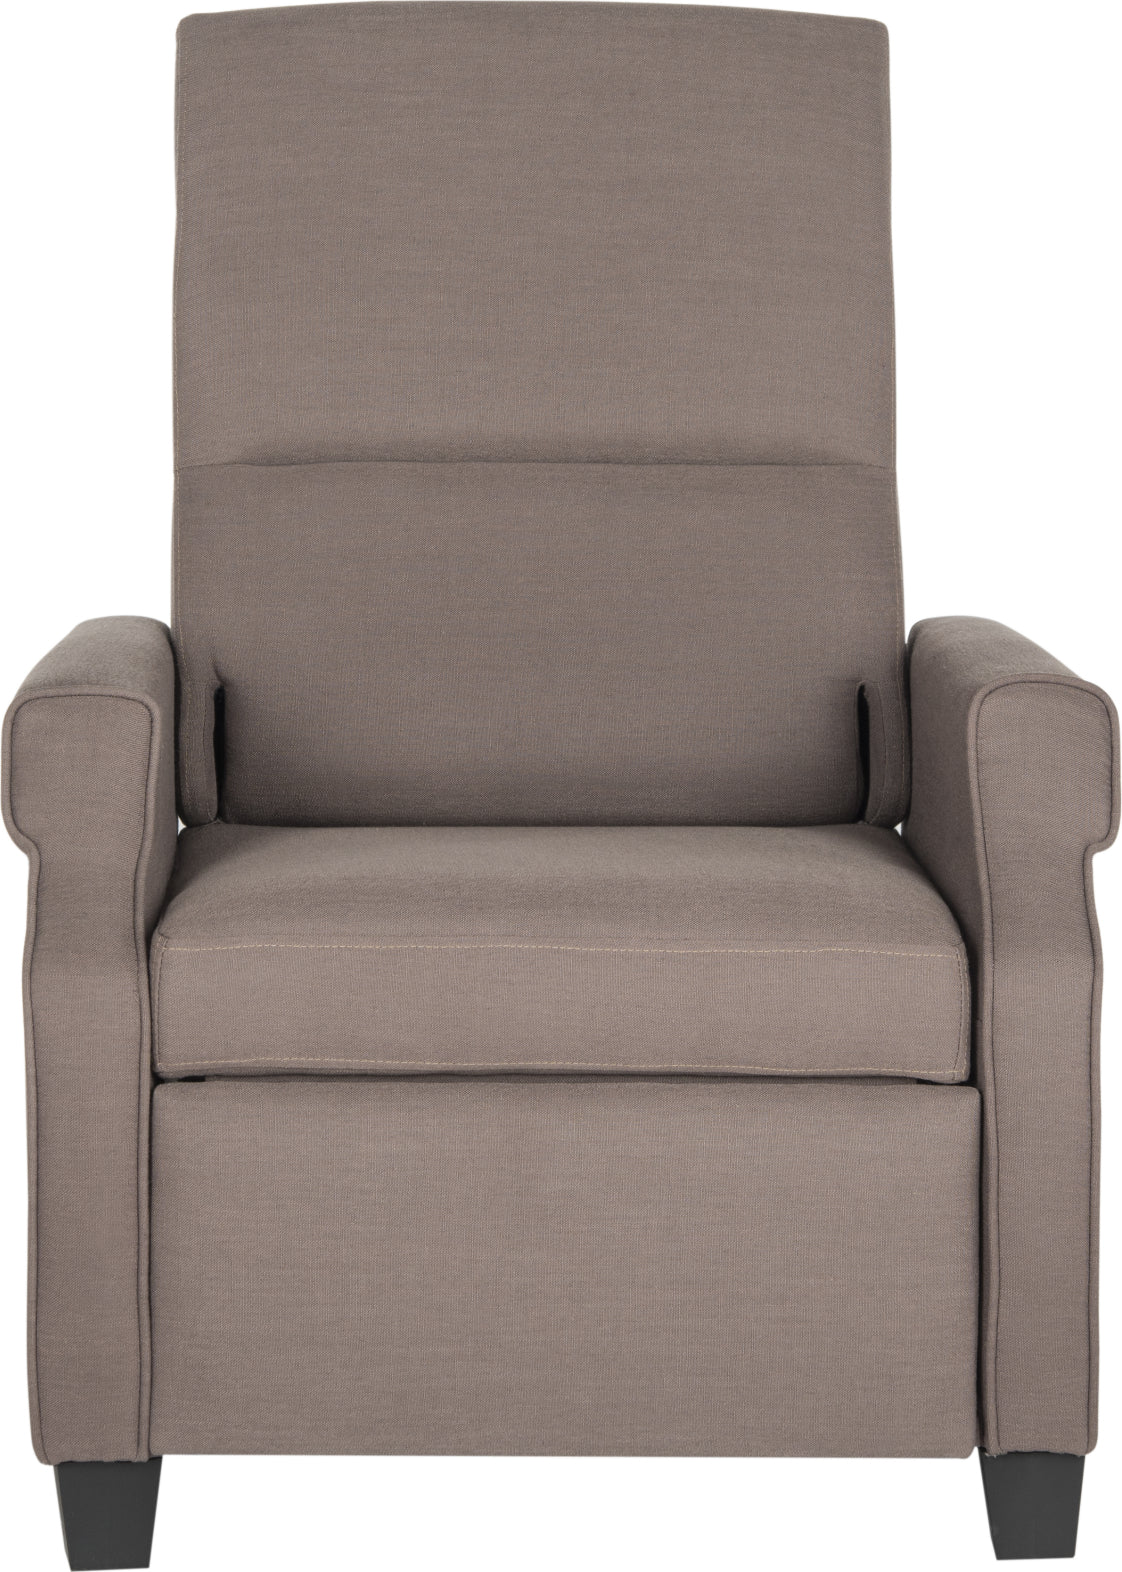 Safavieh Hamilton Recliner Chair Dark Taupe and Black Furniture main image